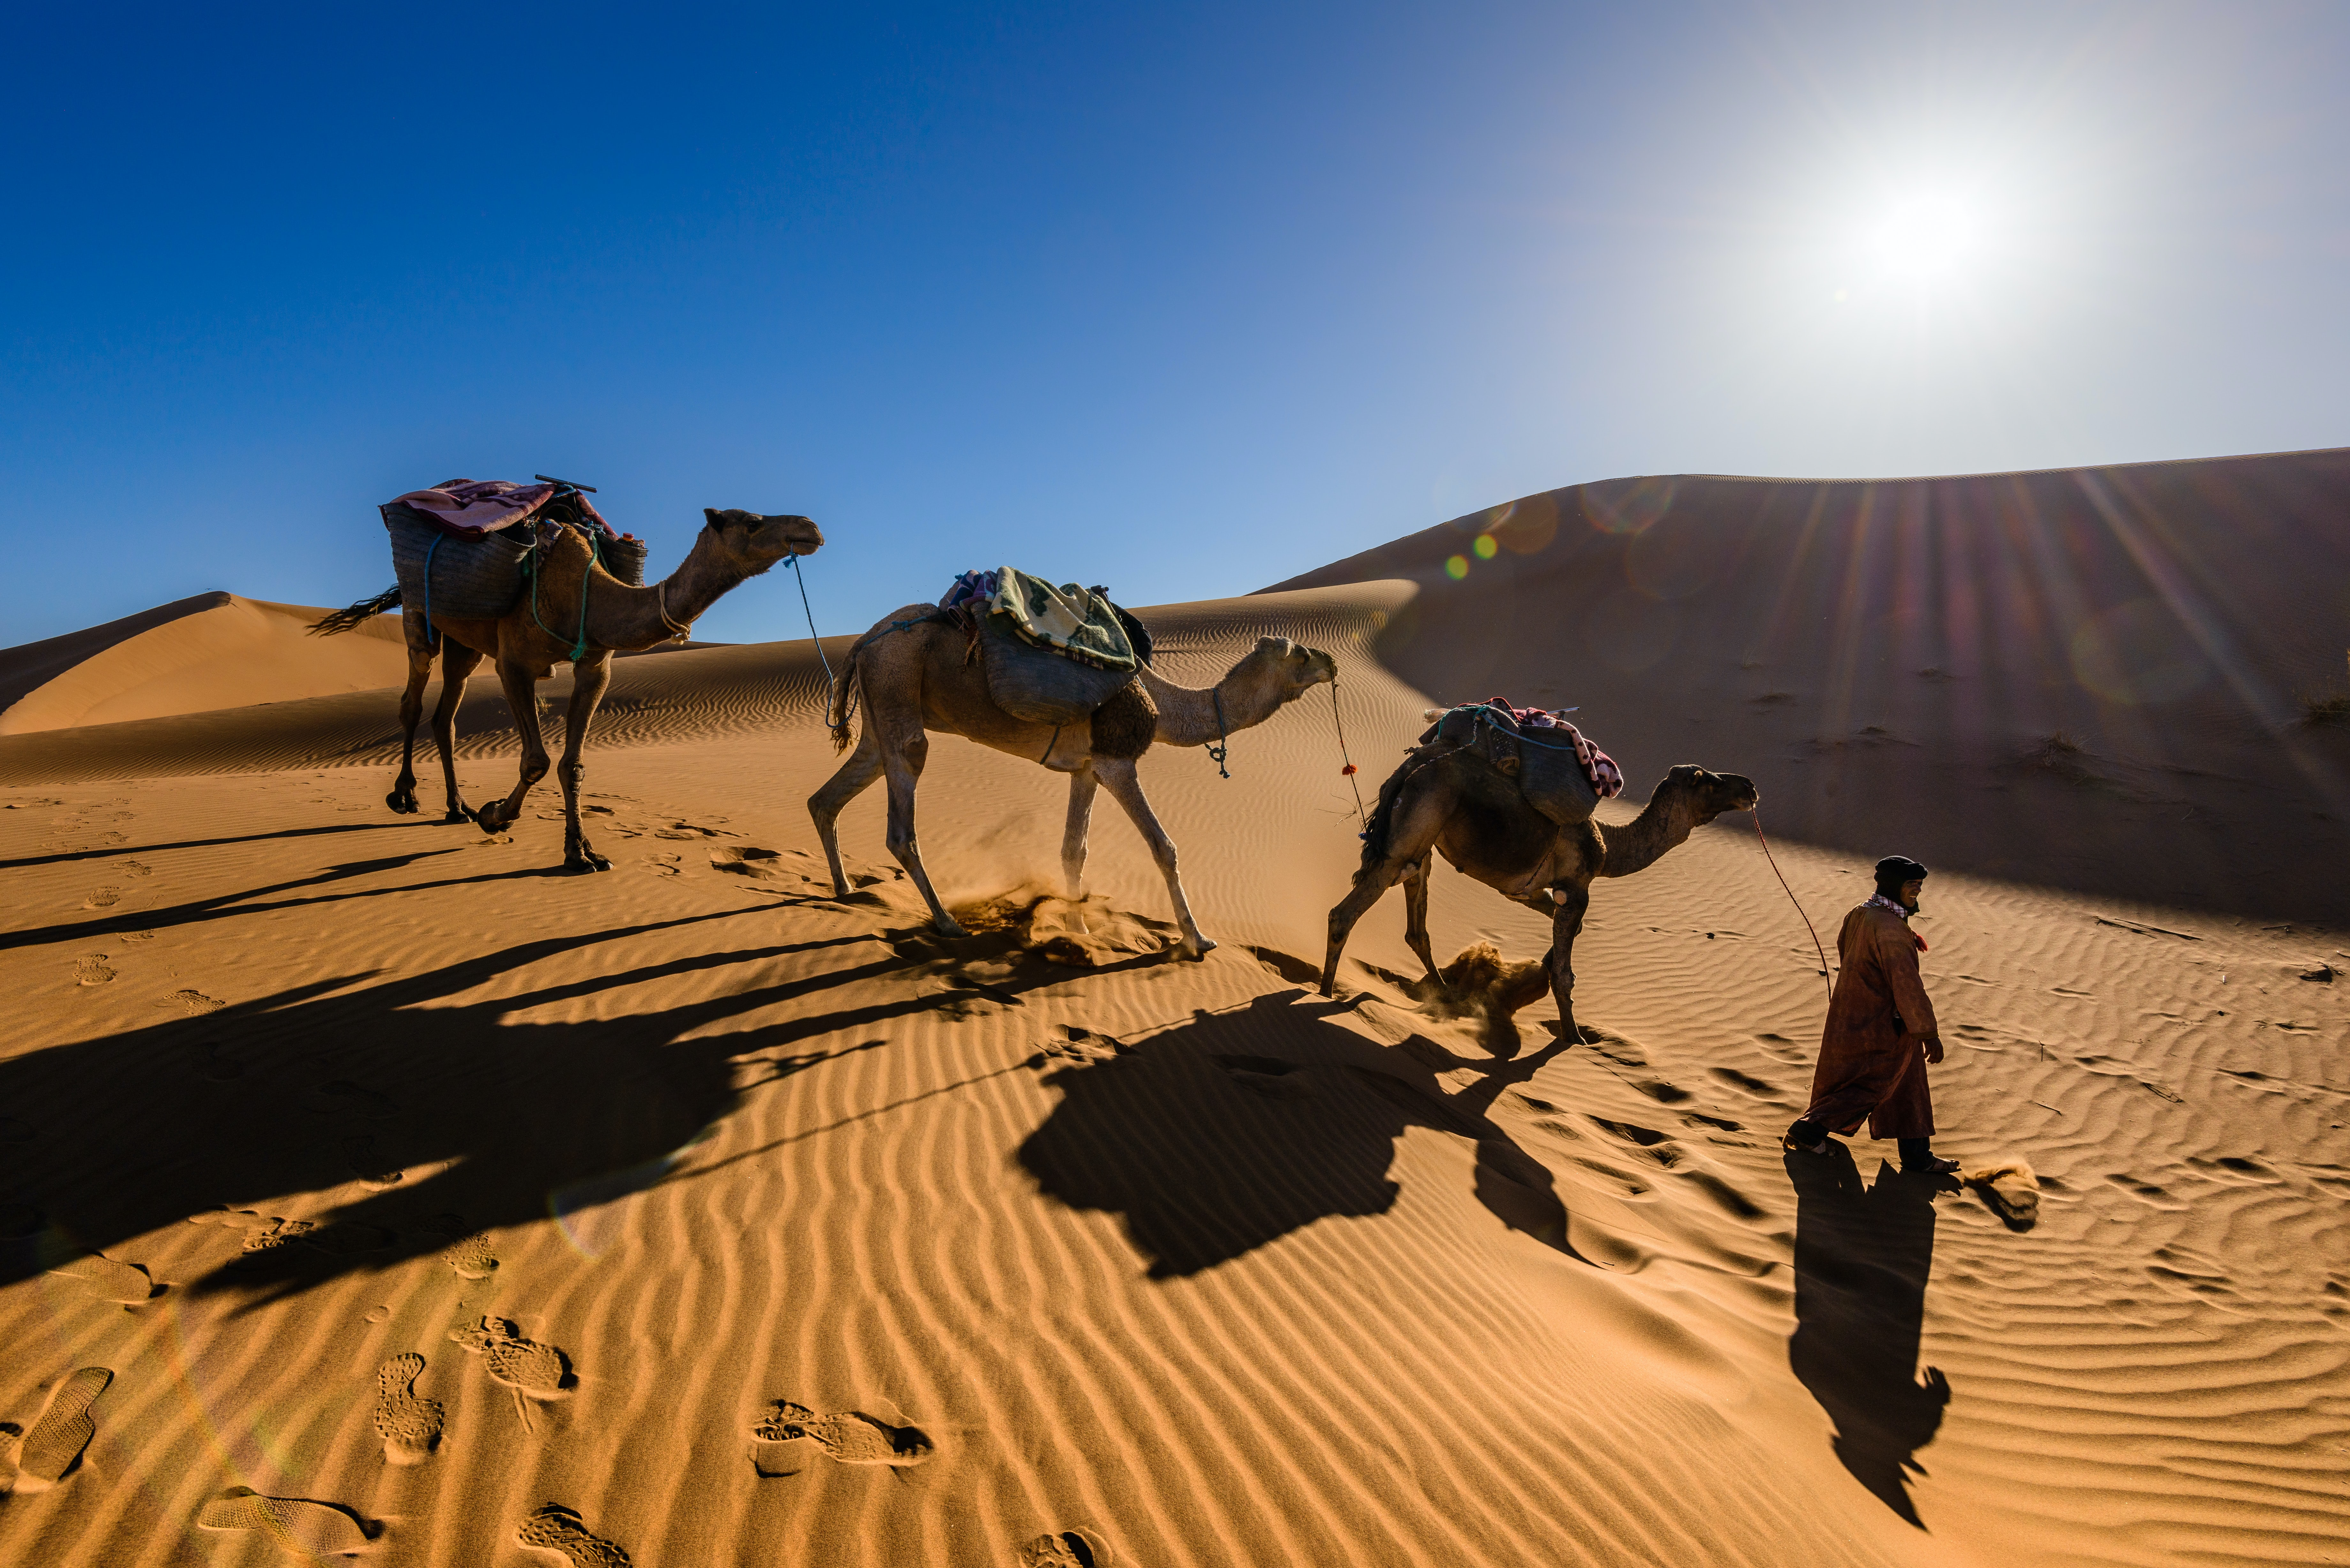 man walking along with camels in desert